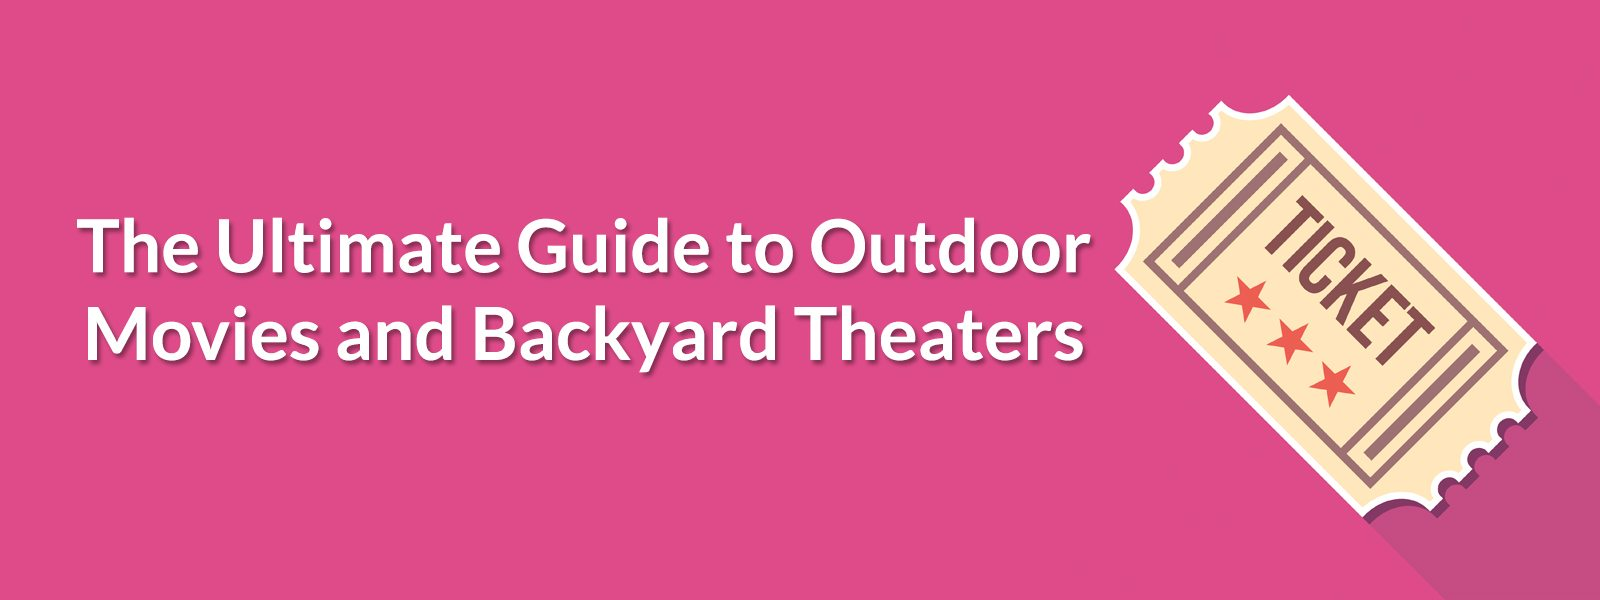 The Ultimate Guide to Outdoor Movies and Backyard Theaters